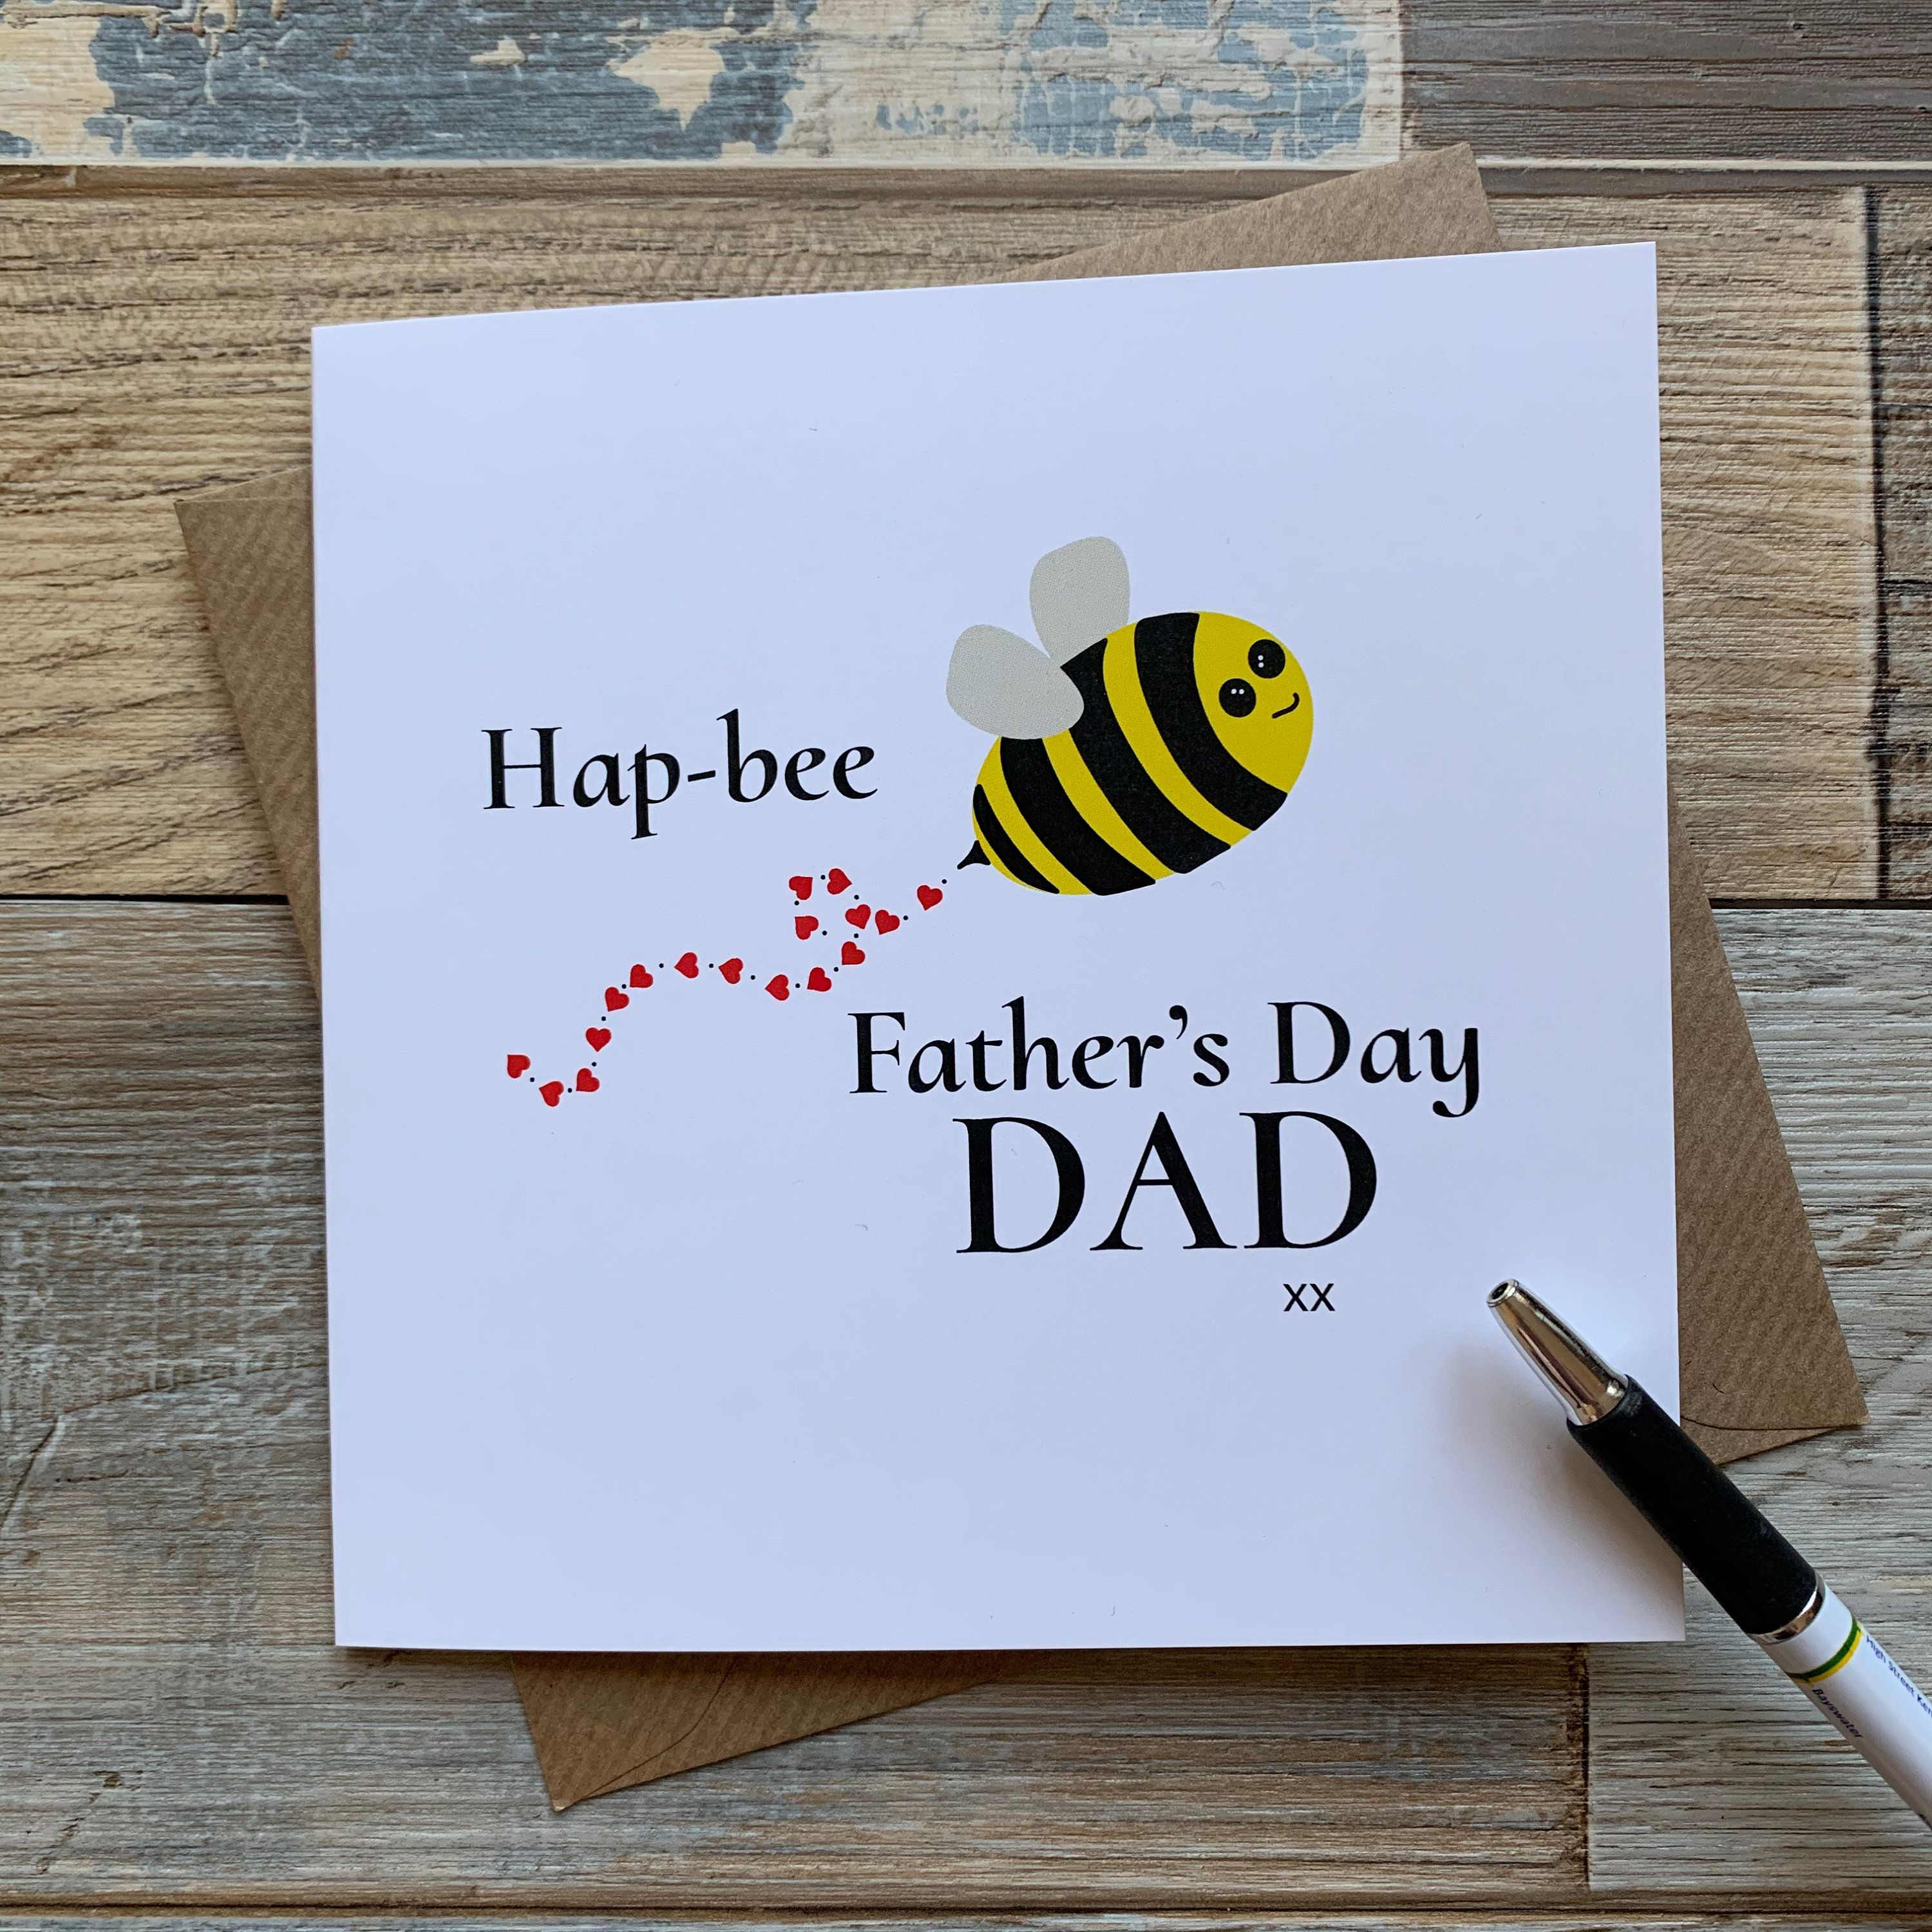 Fathers day card hapbee fathers day dad happy comedy bee